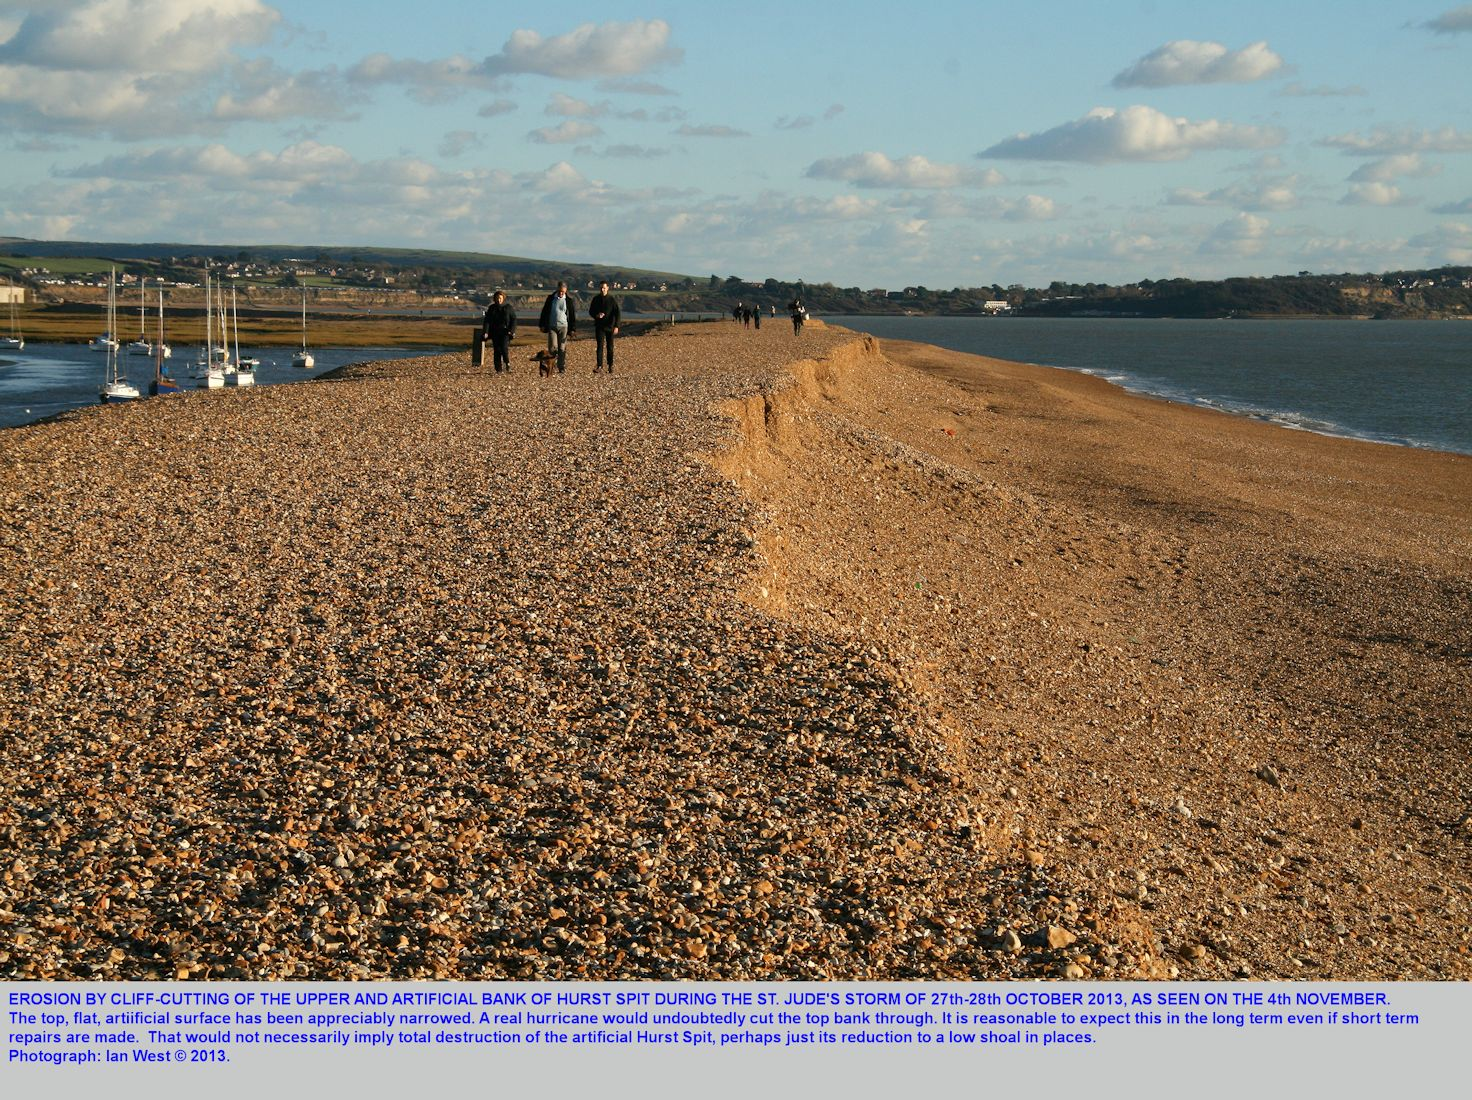 Erosion of the upper artificial bank of  Hurst Spit, Hampshire, by development and landward movement of a low cliff on the seaward side, after the St. Jude's Storm of late October 2013